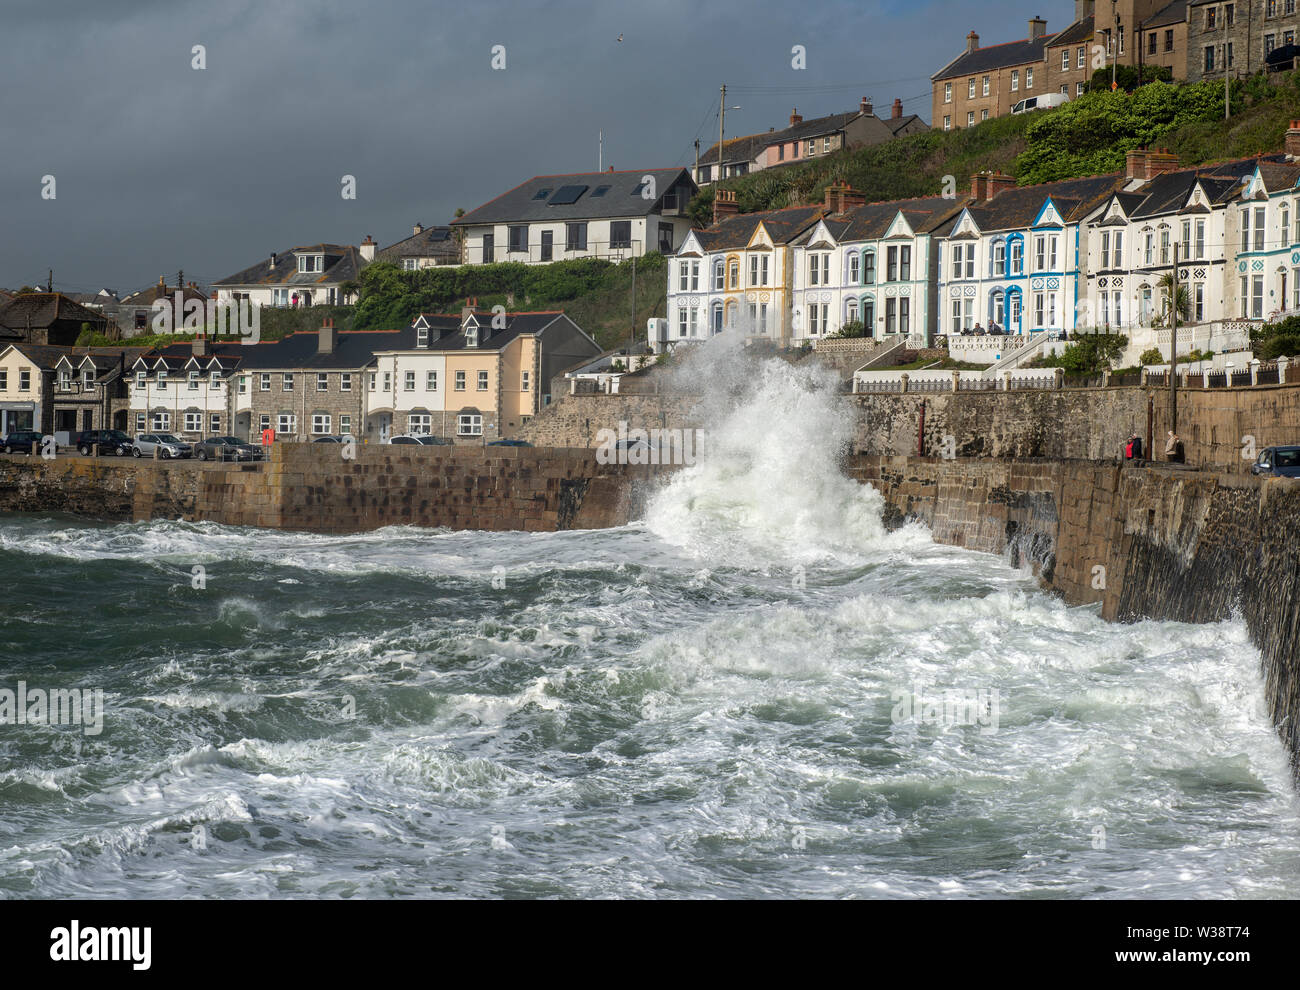 Waves crashing over the harbour wall at Porthleven in Cornwall, England, UK Stock Photo